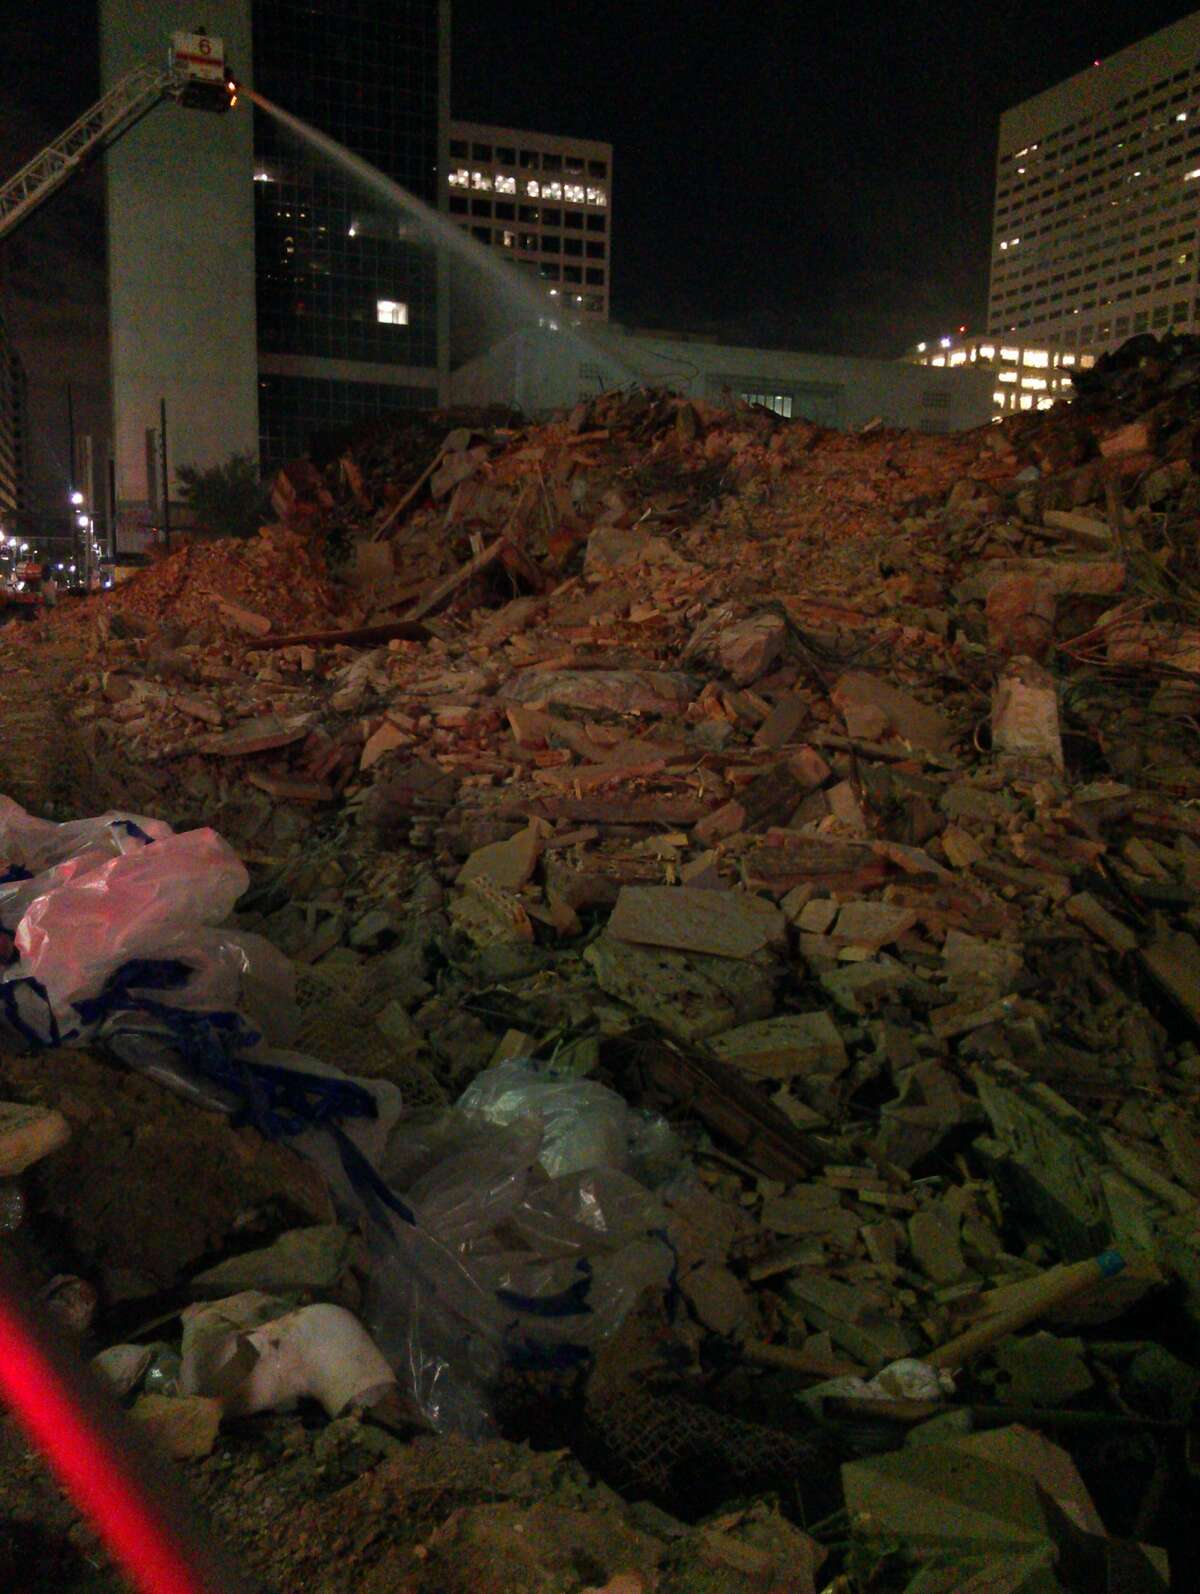 According to HFD, a small flash fire occurred inside the rubble late Sunday night, bringing out fire officials to soak the pile with water to tap it out. (Craig Hlavaty / Houston Chronicle)